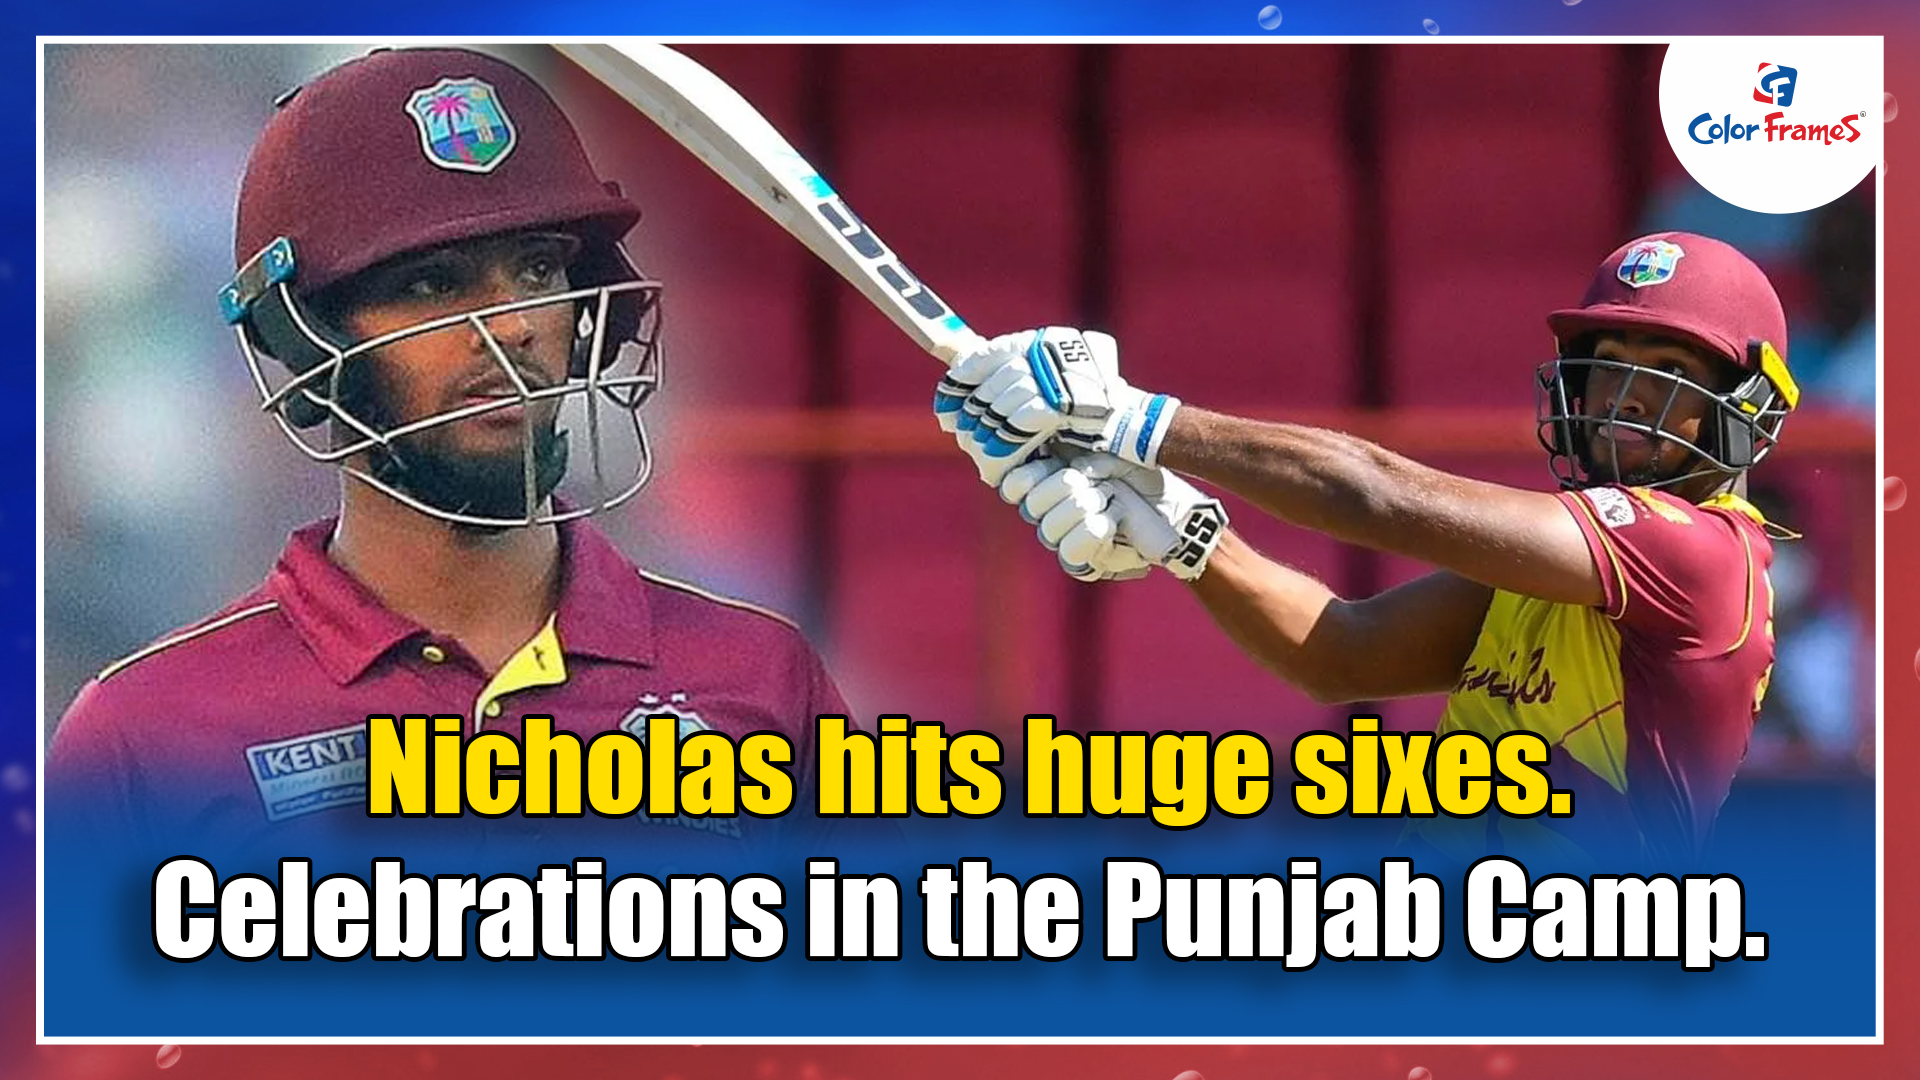 Nicholas hits huge sixes. Celebrations in the Punjab Camp.